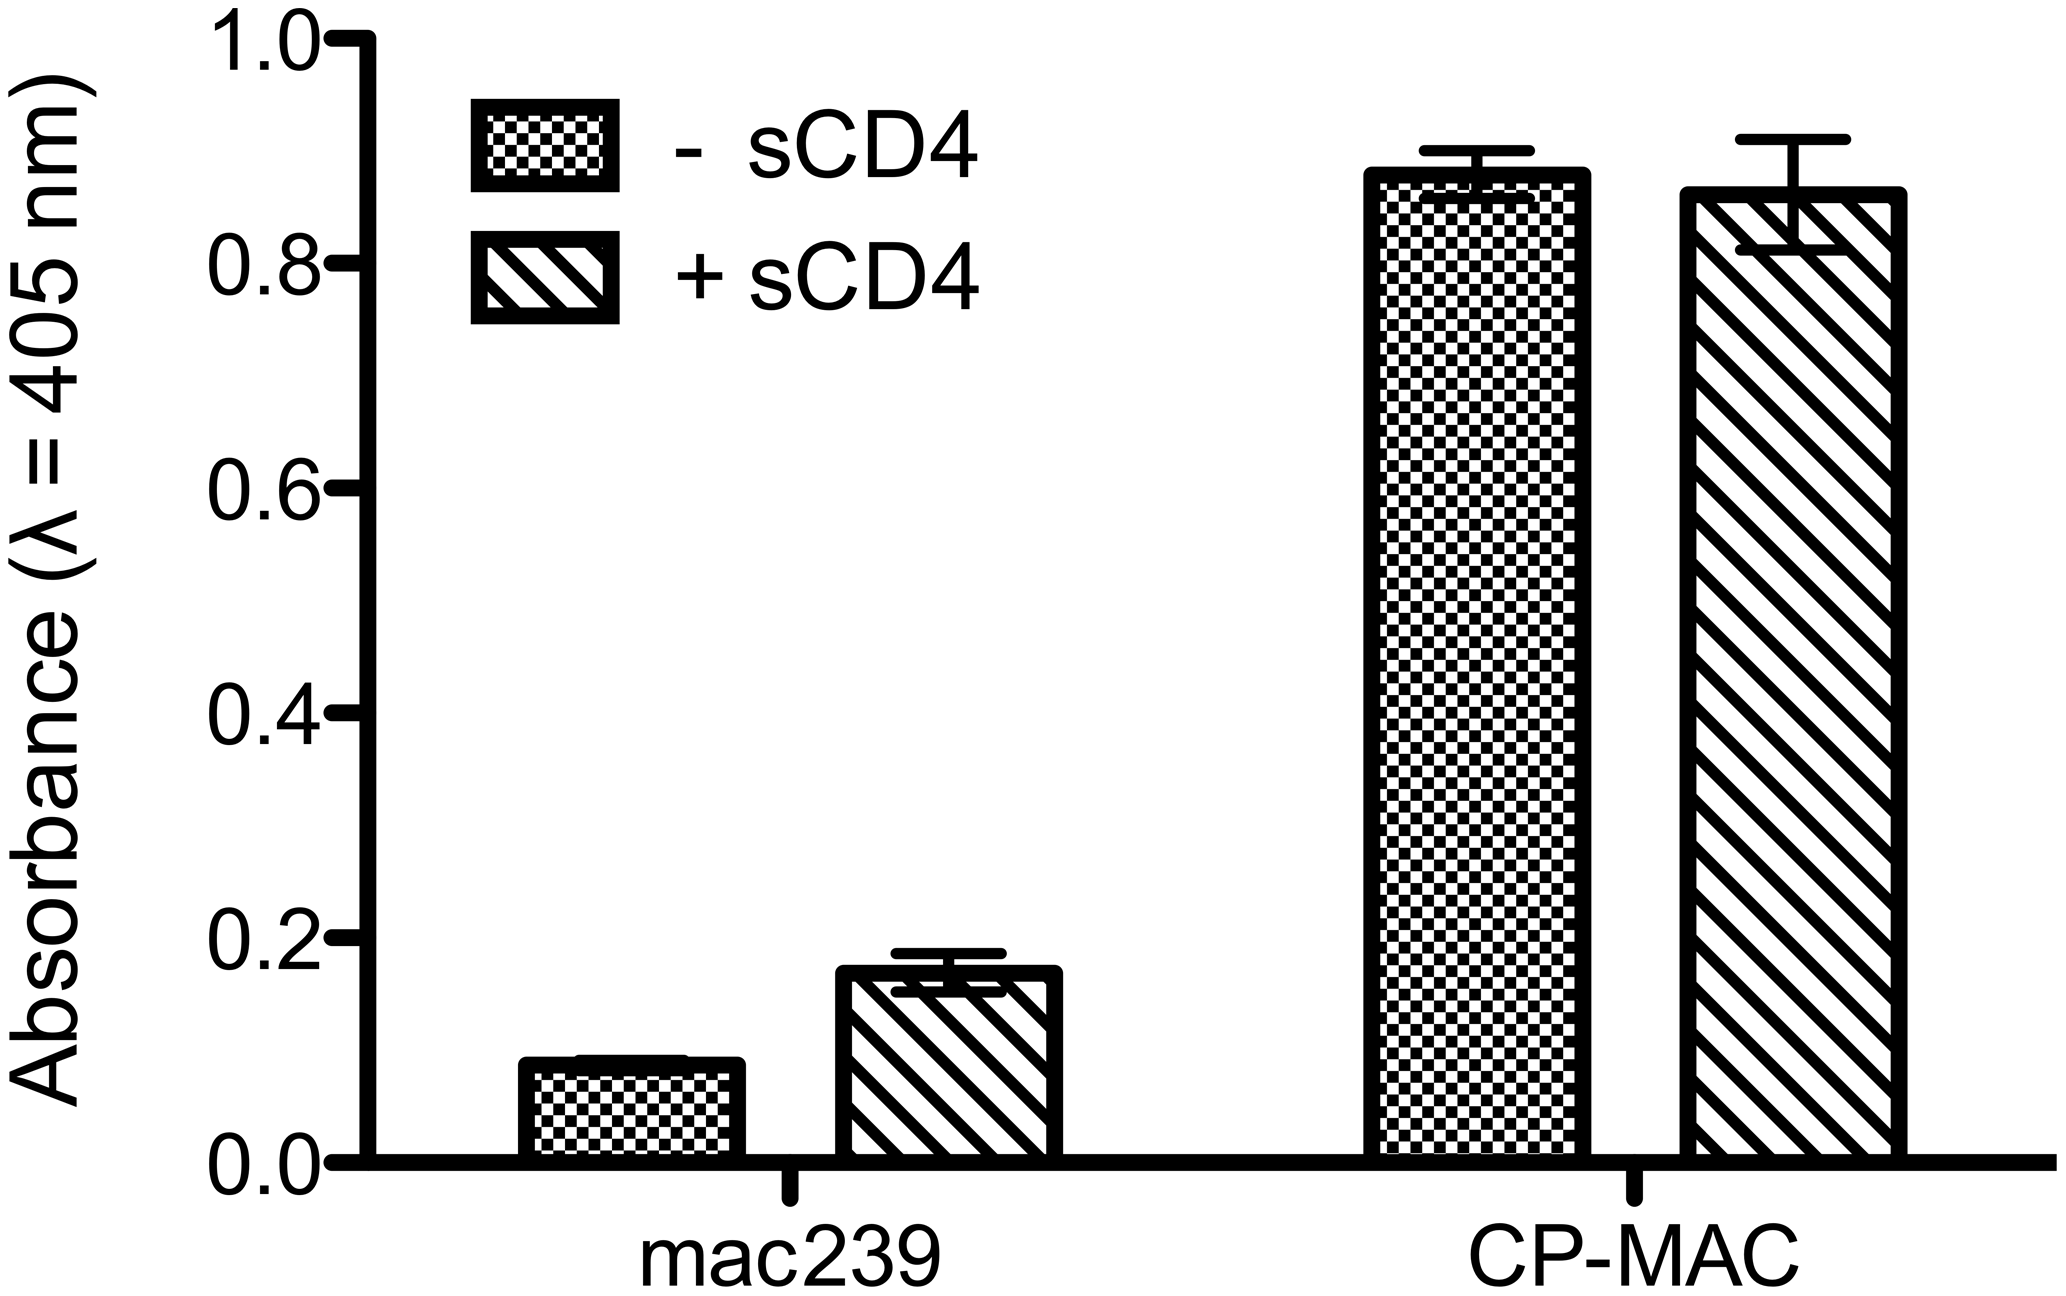 ELISA analysis comparing the binding of 7D3 to either SIVmac239 or SIV CP-MAC viruses.